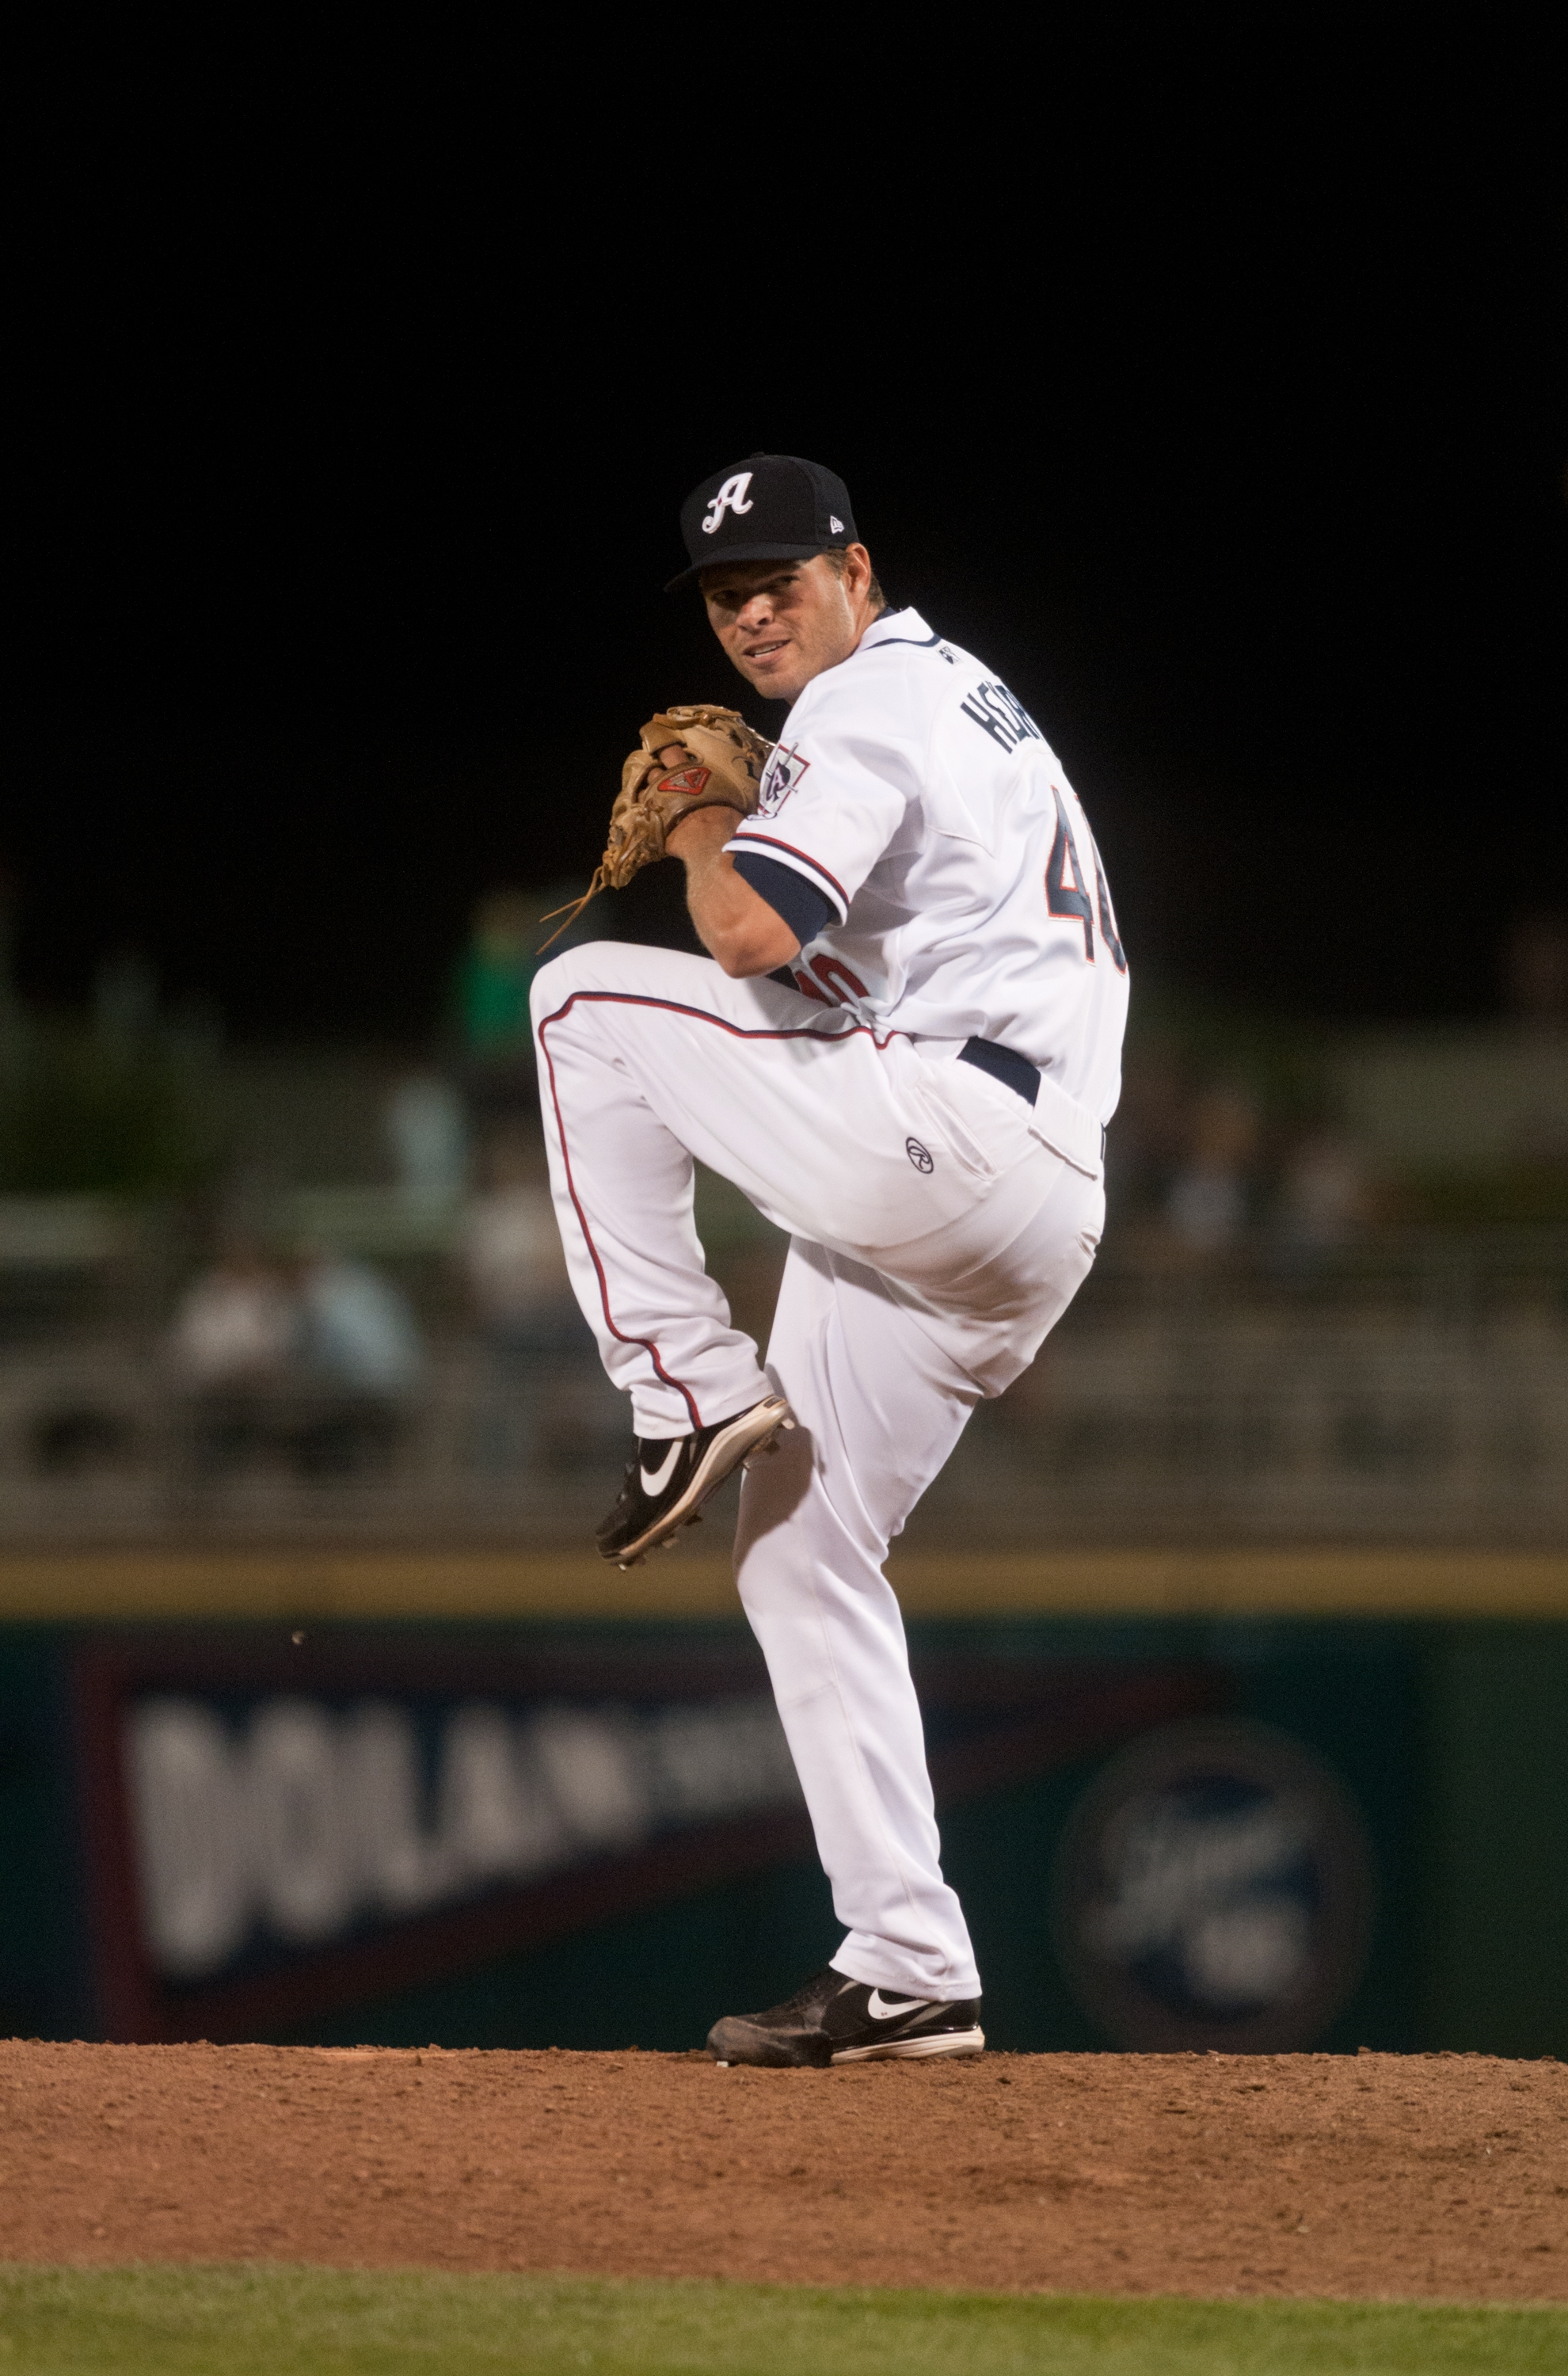 Not The Baseball Pitcher: Henry Gives Fans An Inside Look At Pro Baseball « Not Just